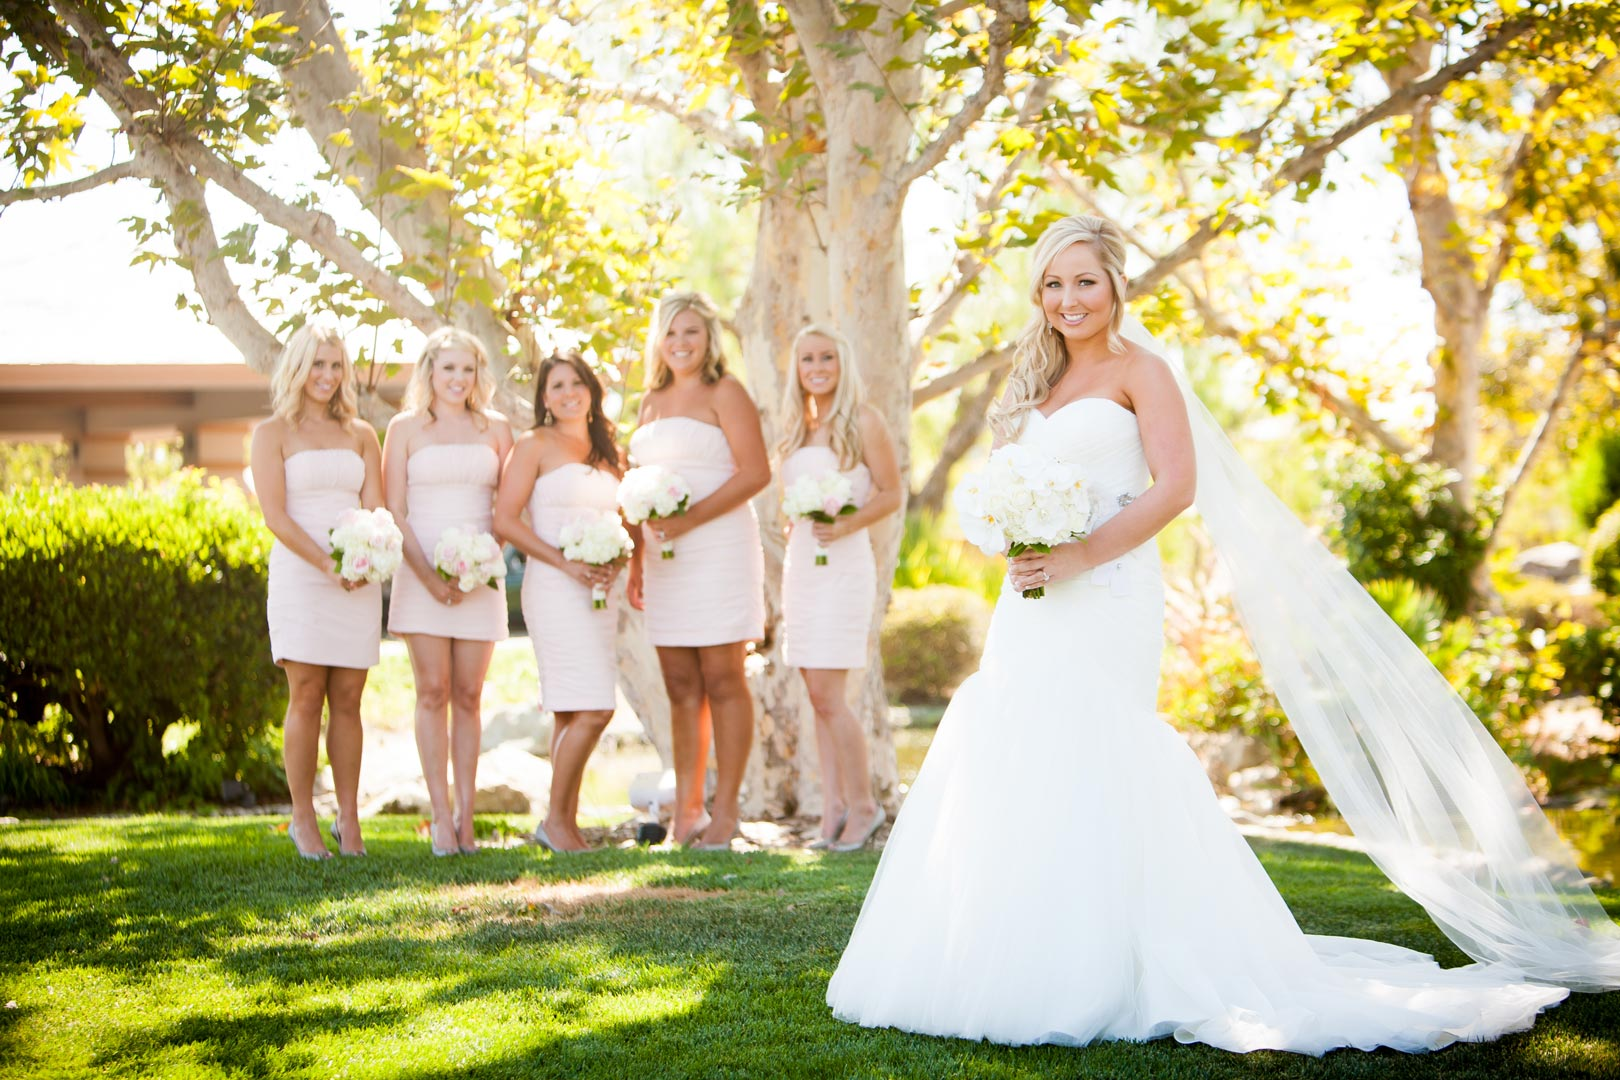 Wedding photographer san diego san diego wedding for Cheap wedding dresses san diego